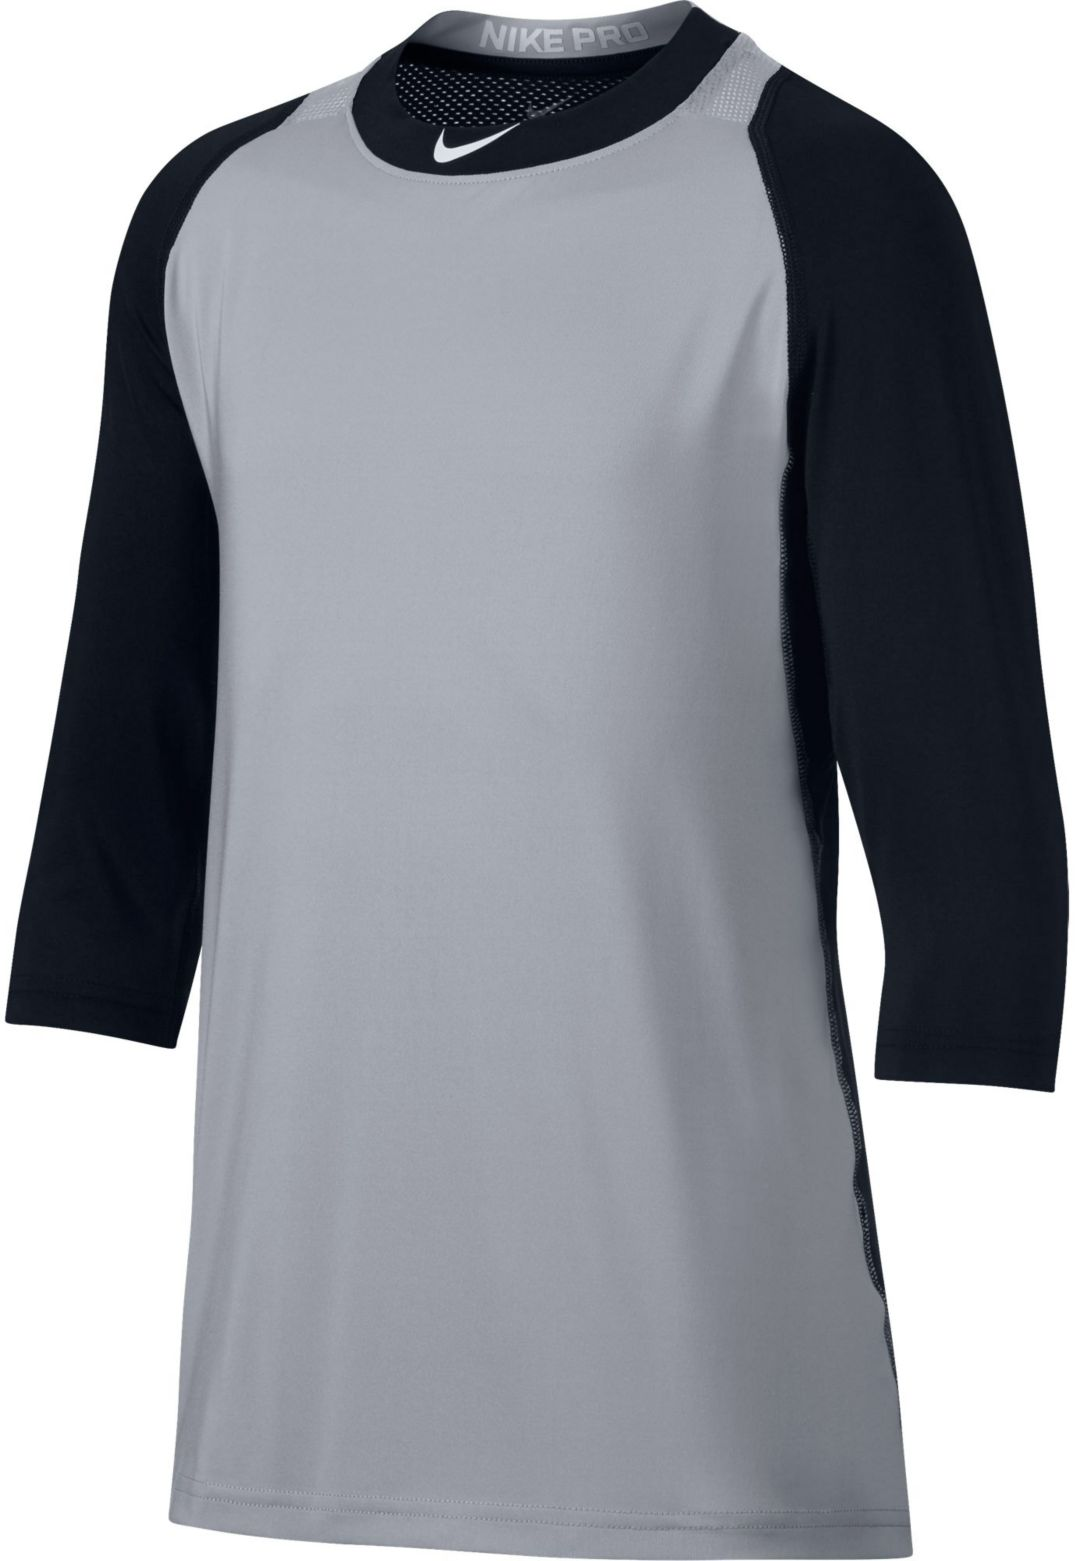 b315d5099df Nike Men's Pro Cool Reglan ¾-Sleeve Baseball Shirt | DICK'S Sporting ...